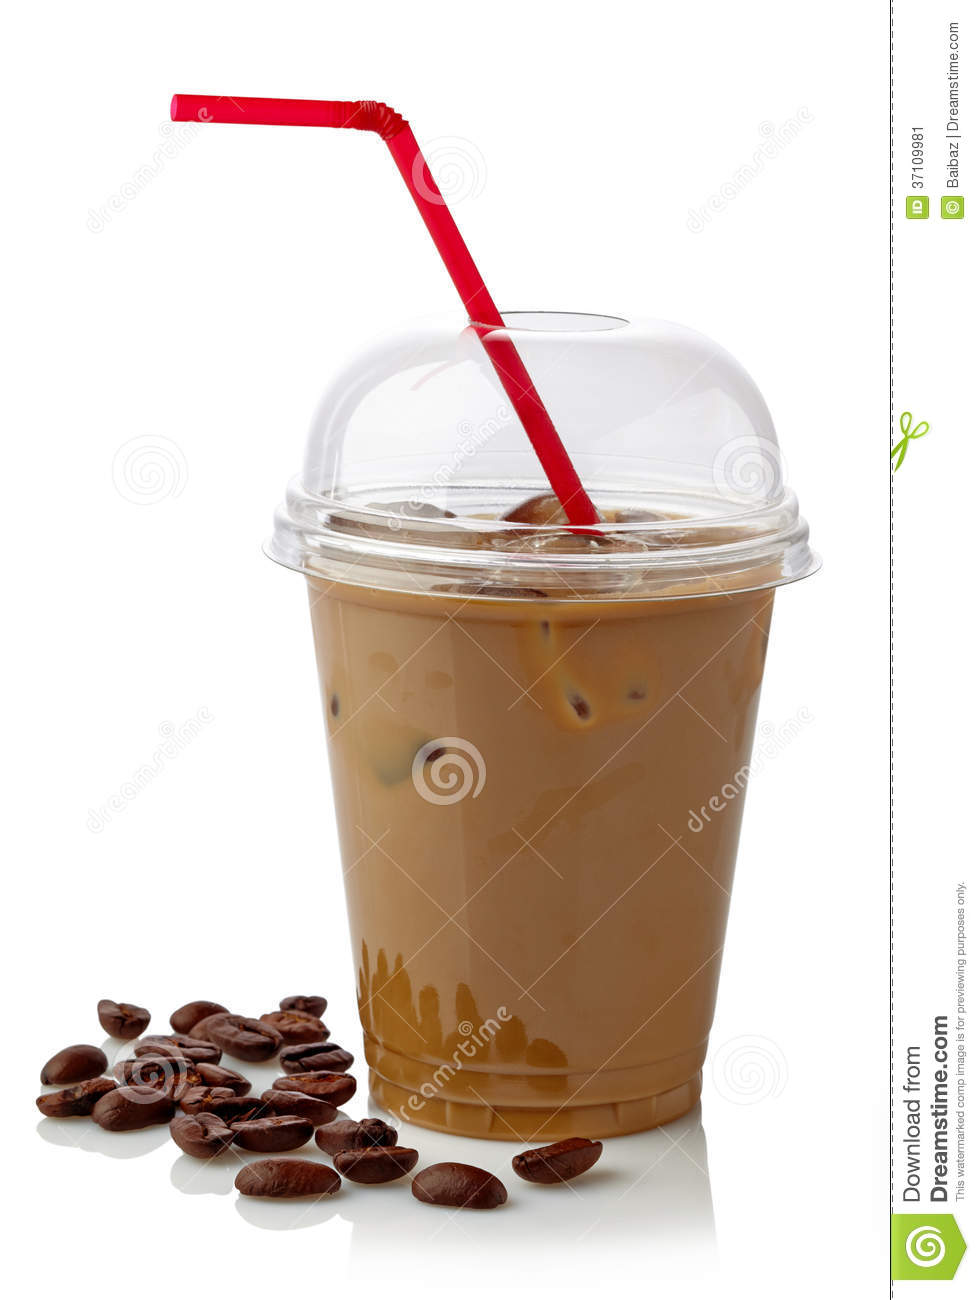 Iced coffee stock image. Image of refreshment, syrup ...